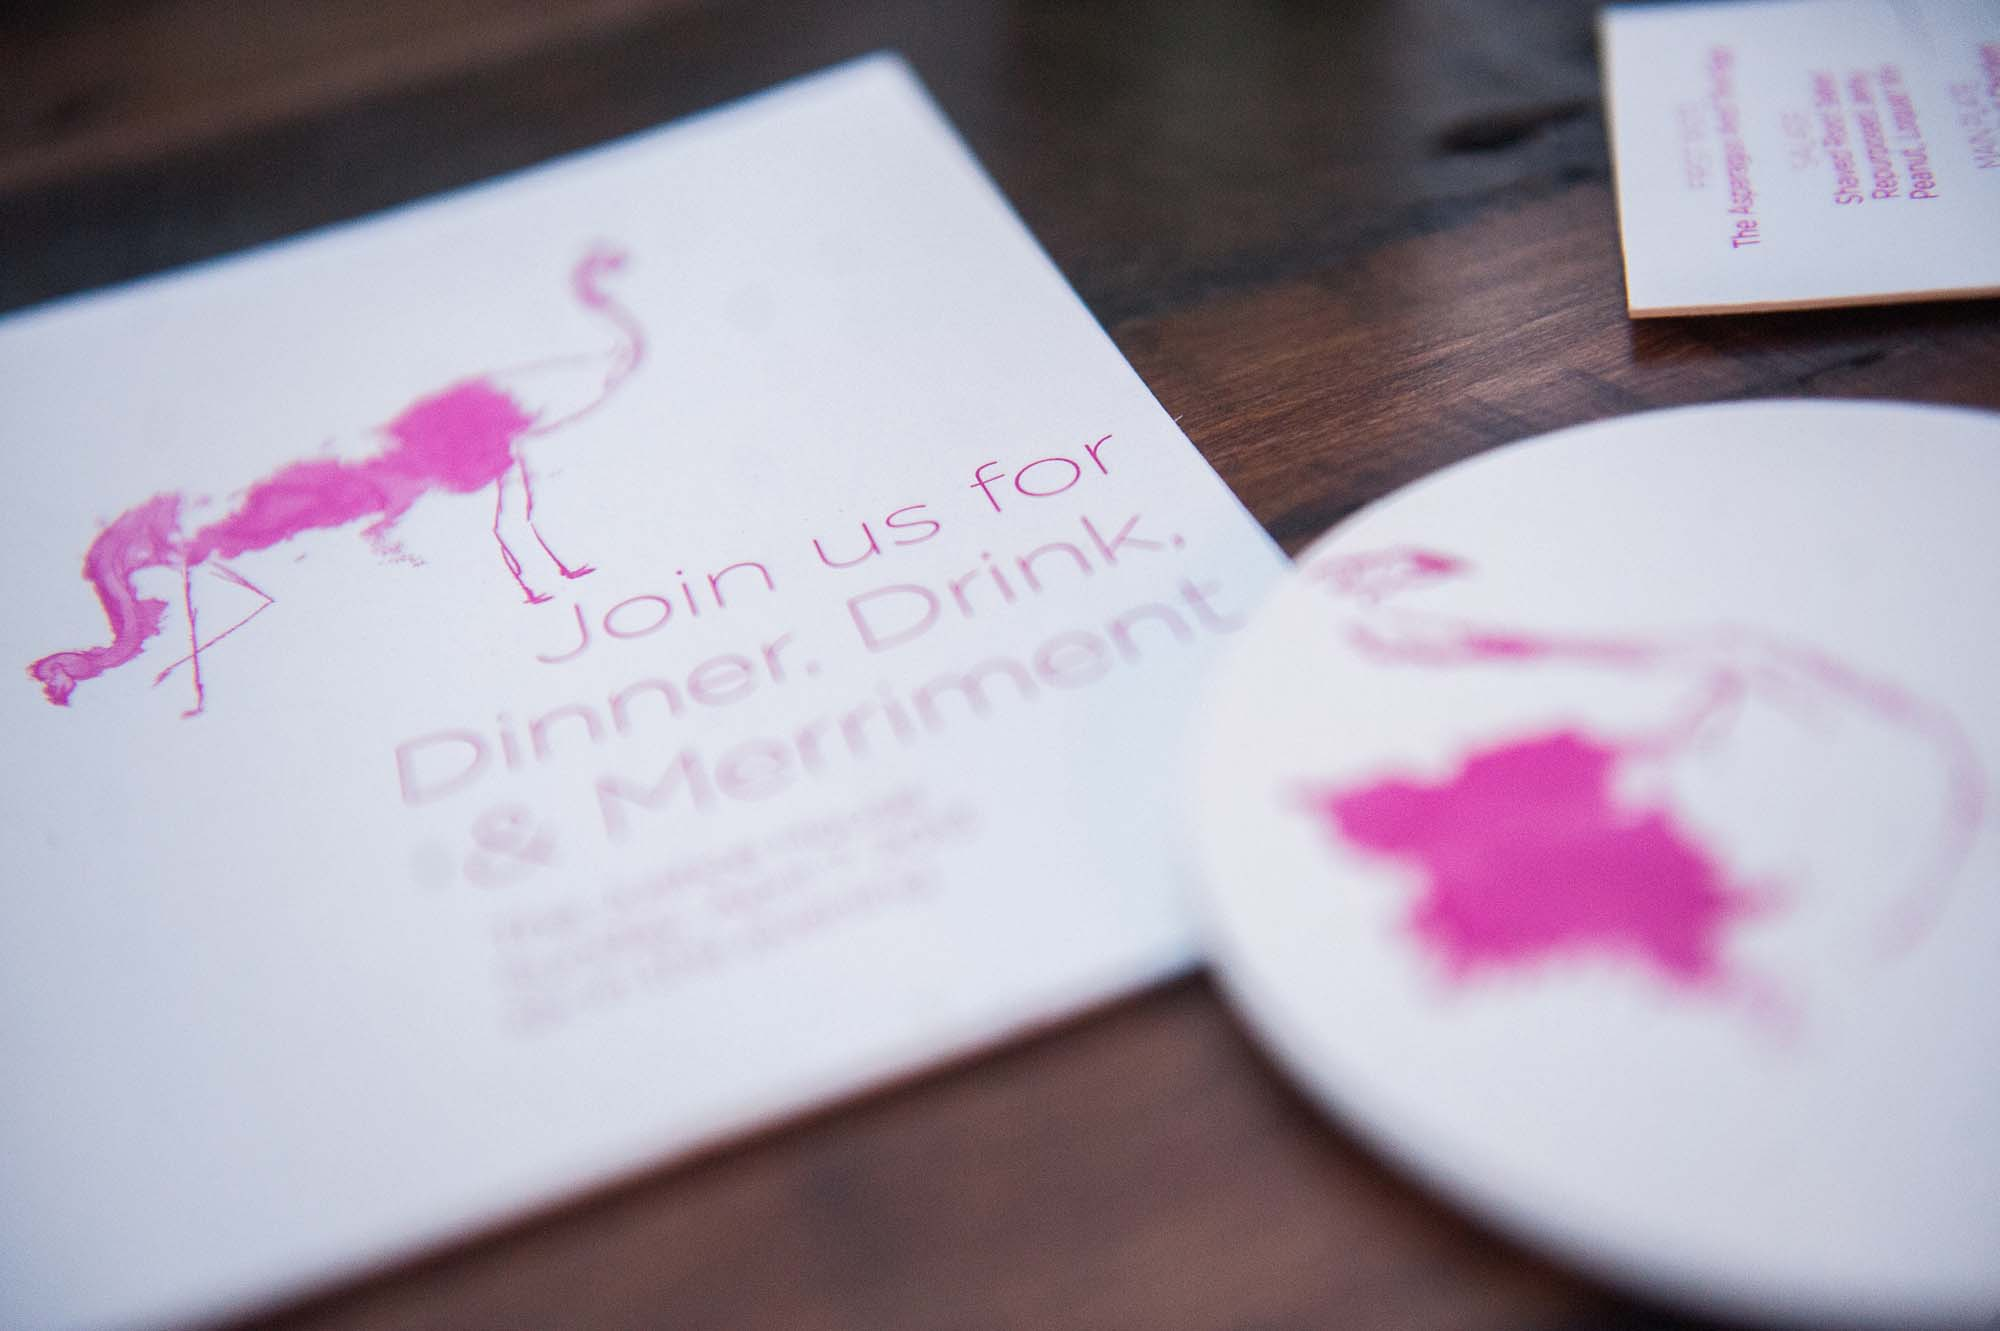 Dinner Party Letterpress Invitations - A Fine Press